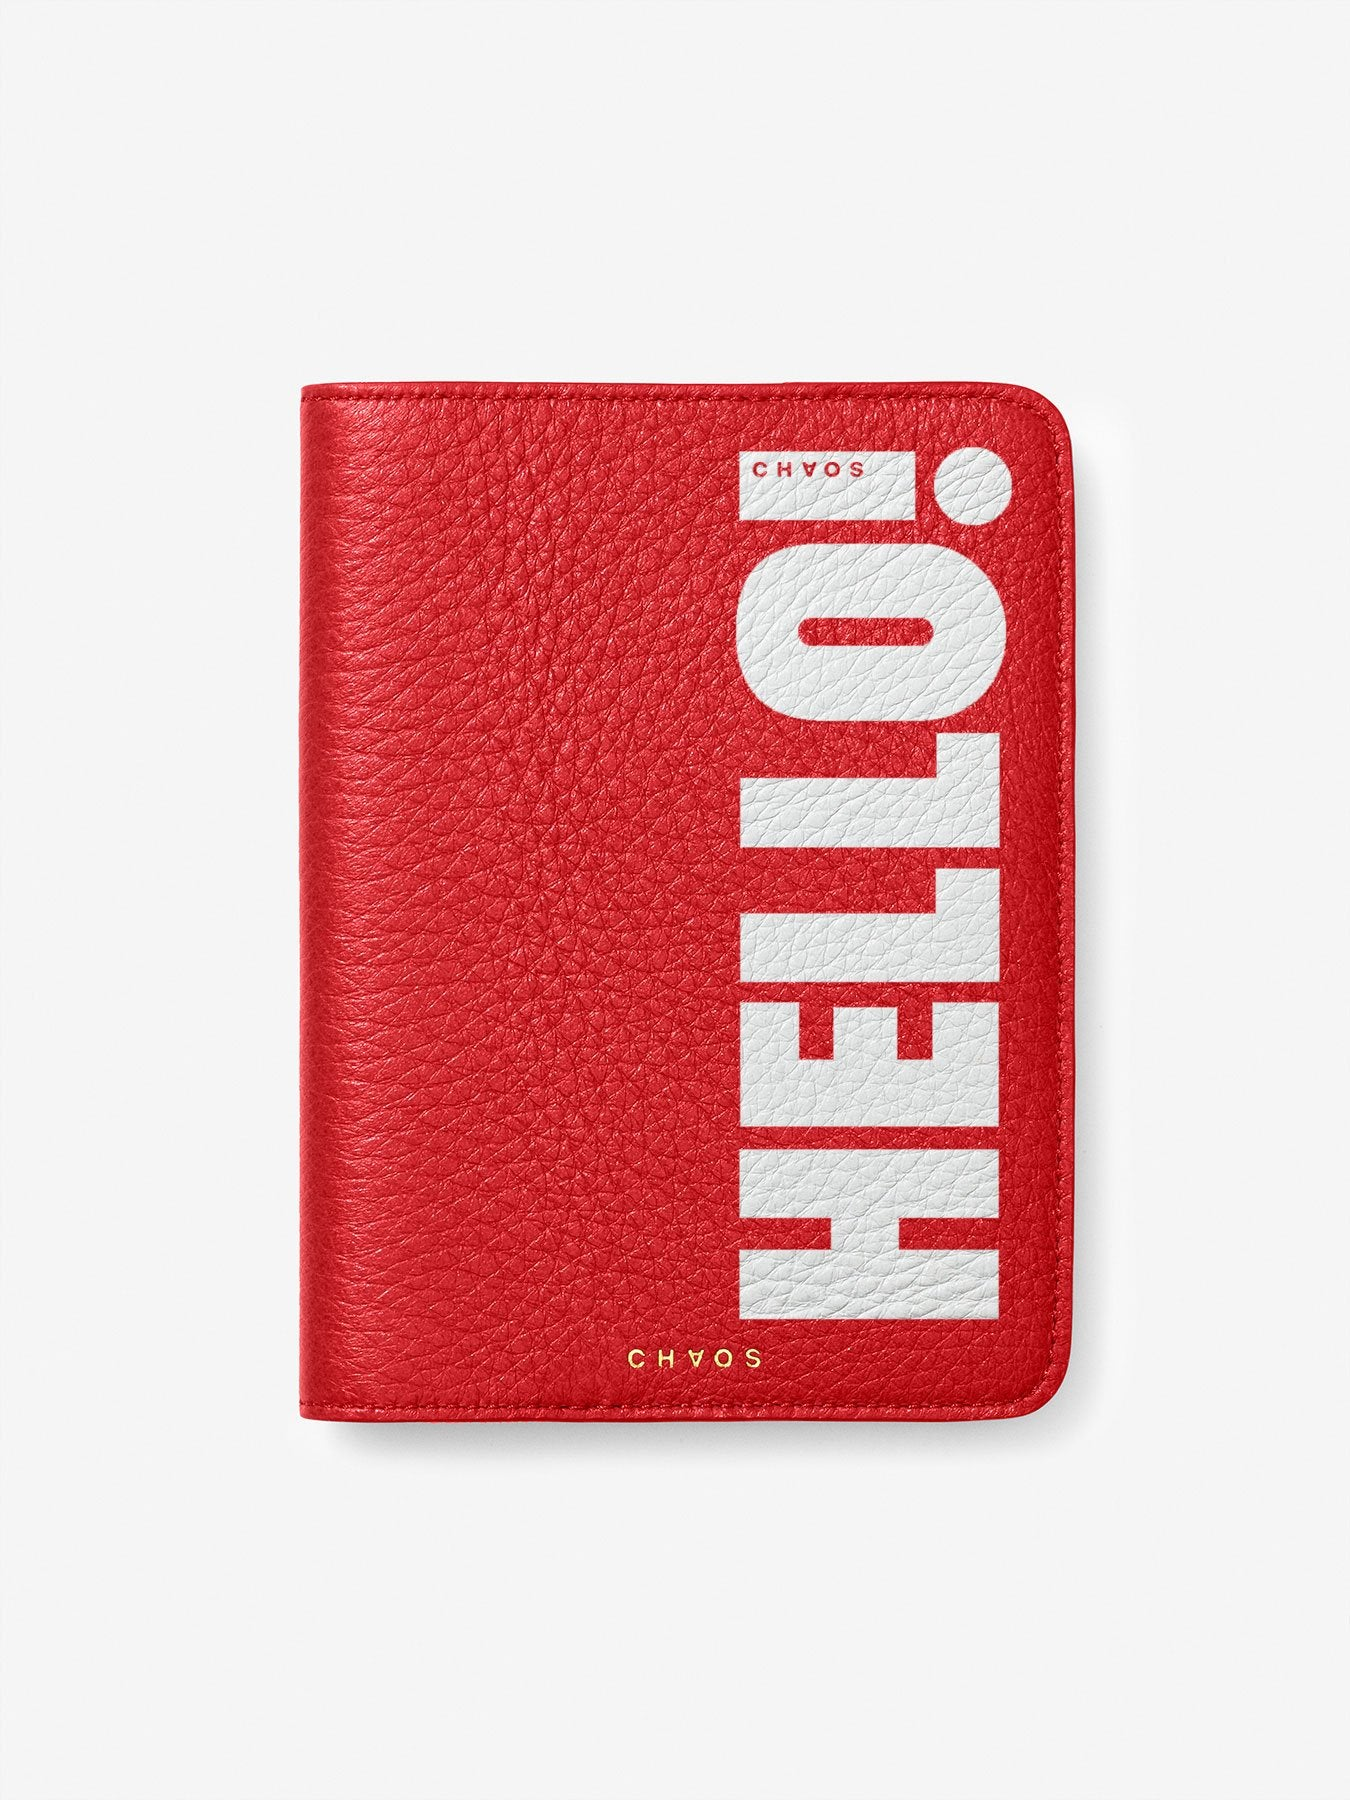 Chaos x Hello! Magazine Leather Passport Cover - Hello Red